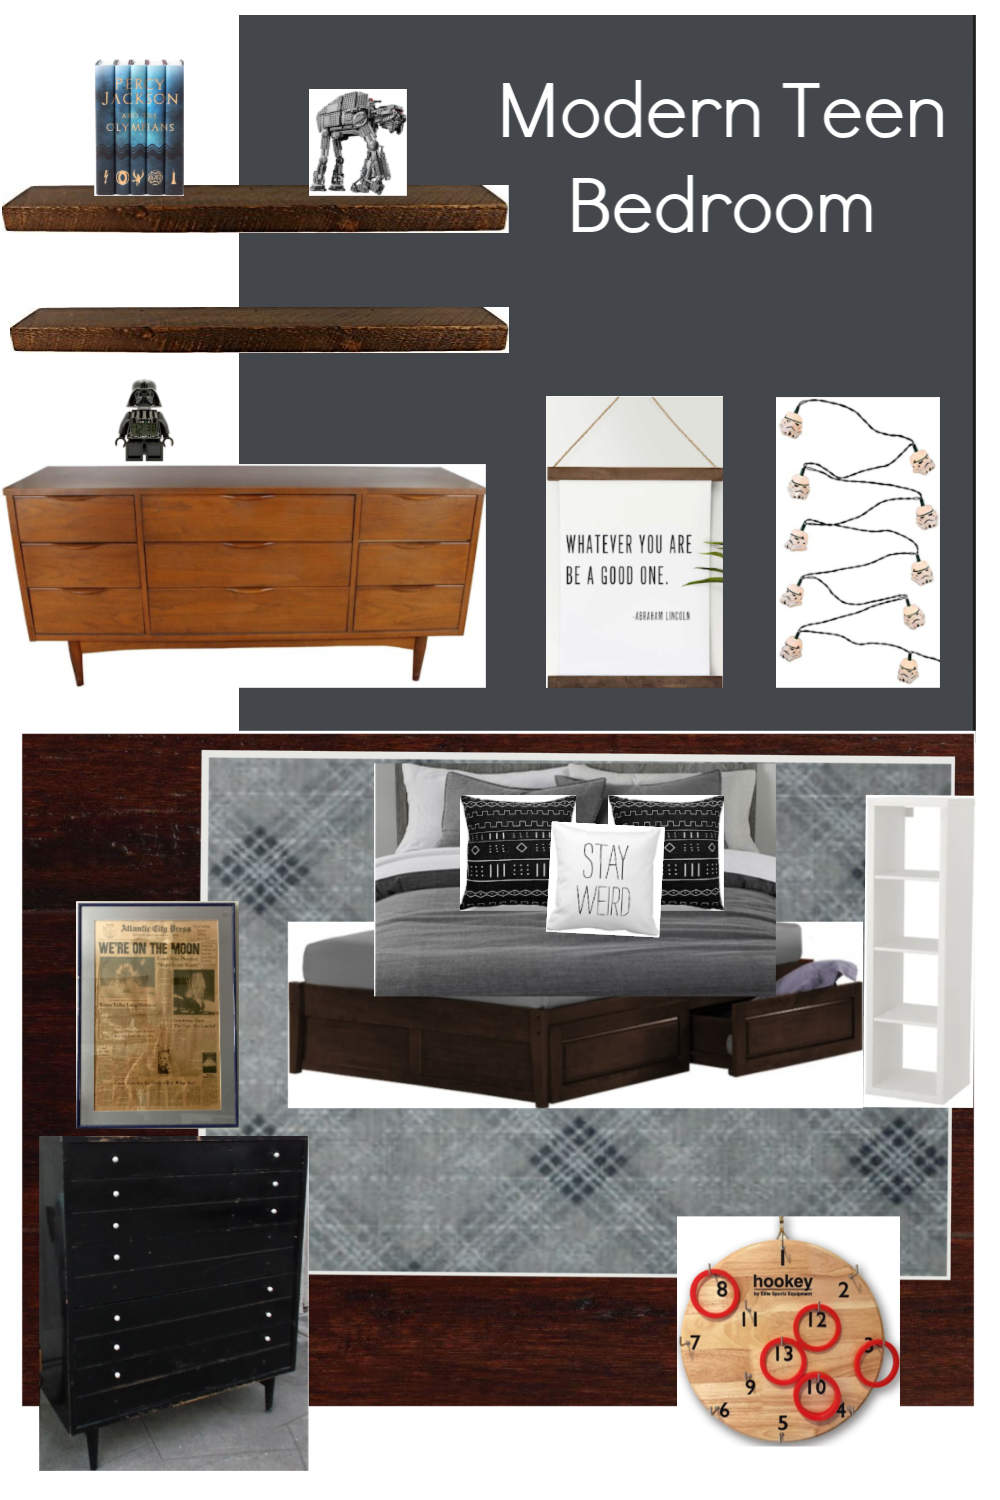 Modern teen boy bedroom plans - Cassie Bustamante